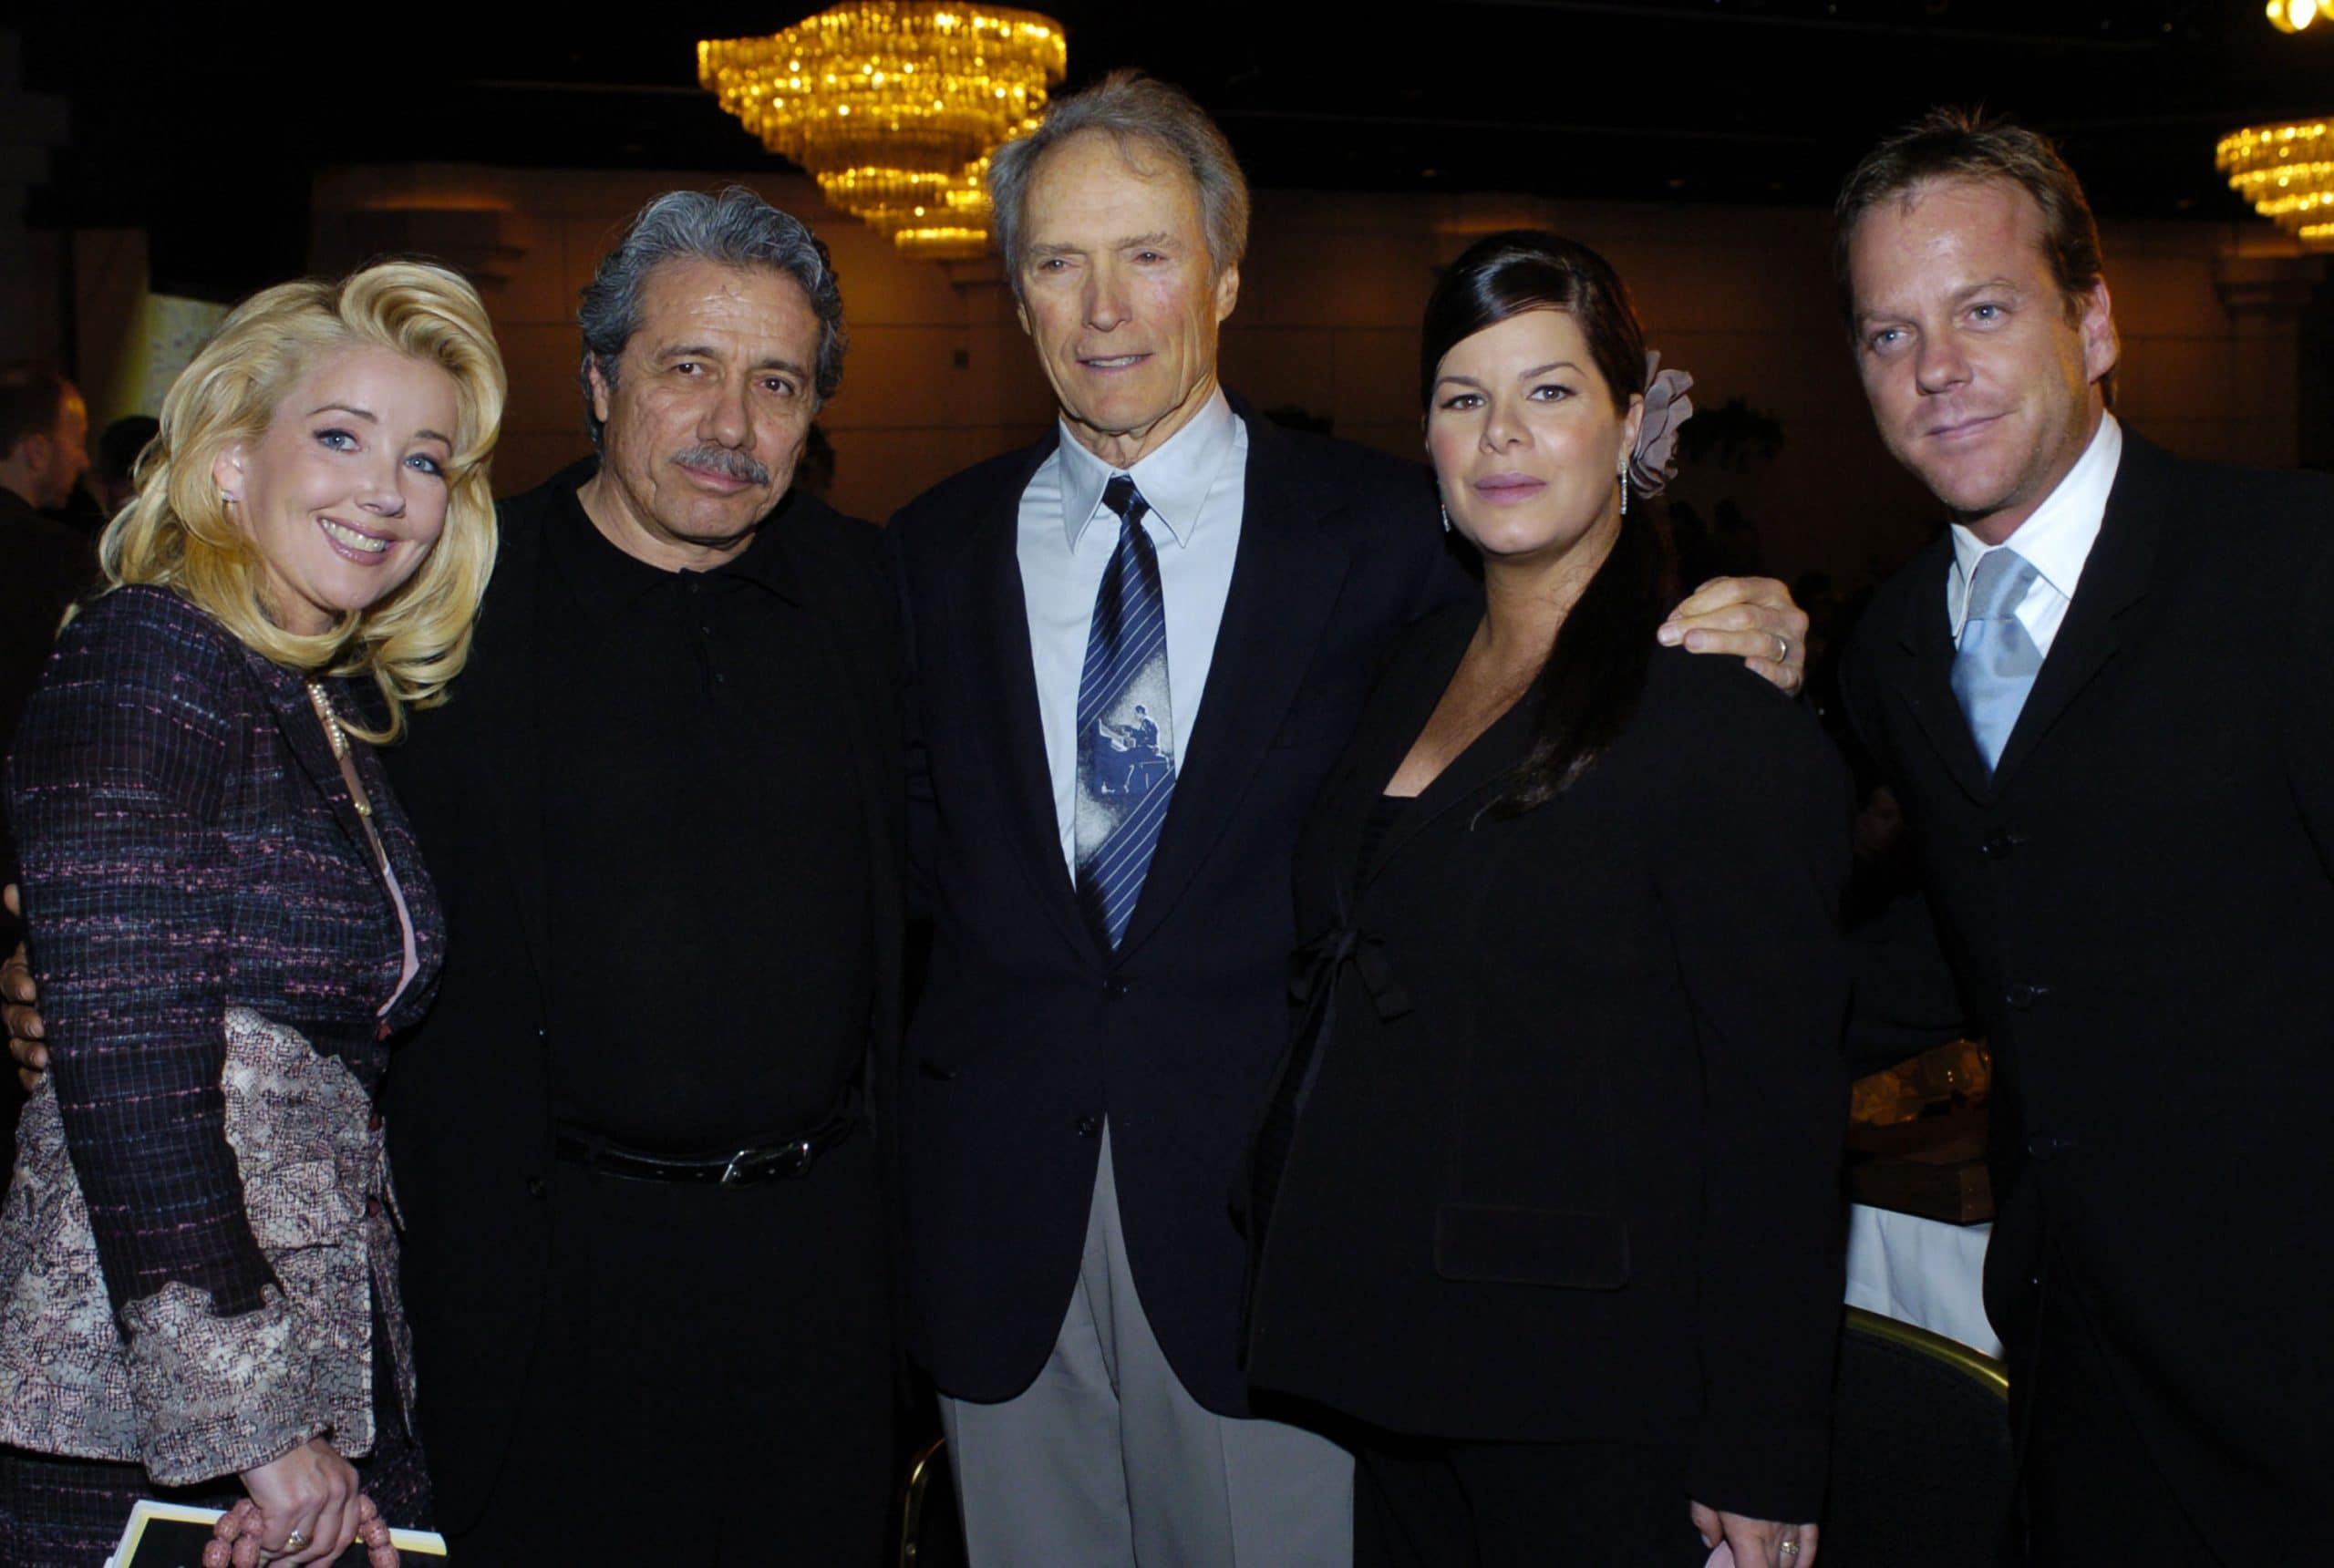 Melody Thomas Scott, Edward James Olmos, Clint Eastwood, Marcia Gay Harden, and Kiefer Sutherland